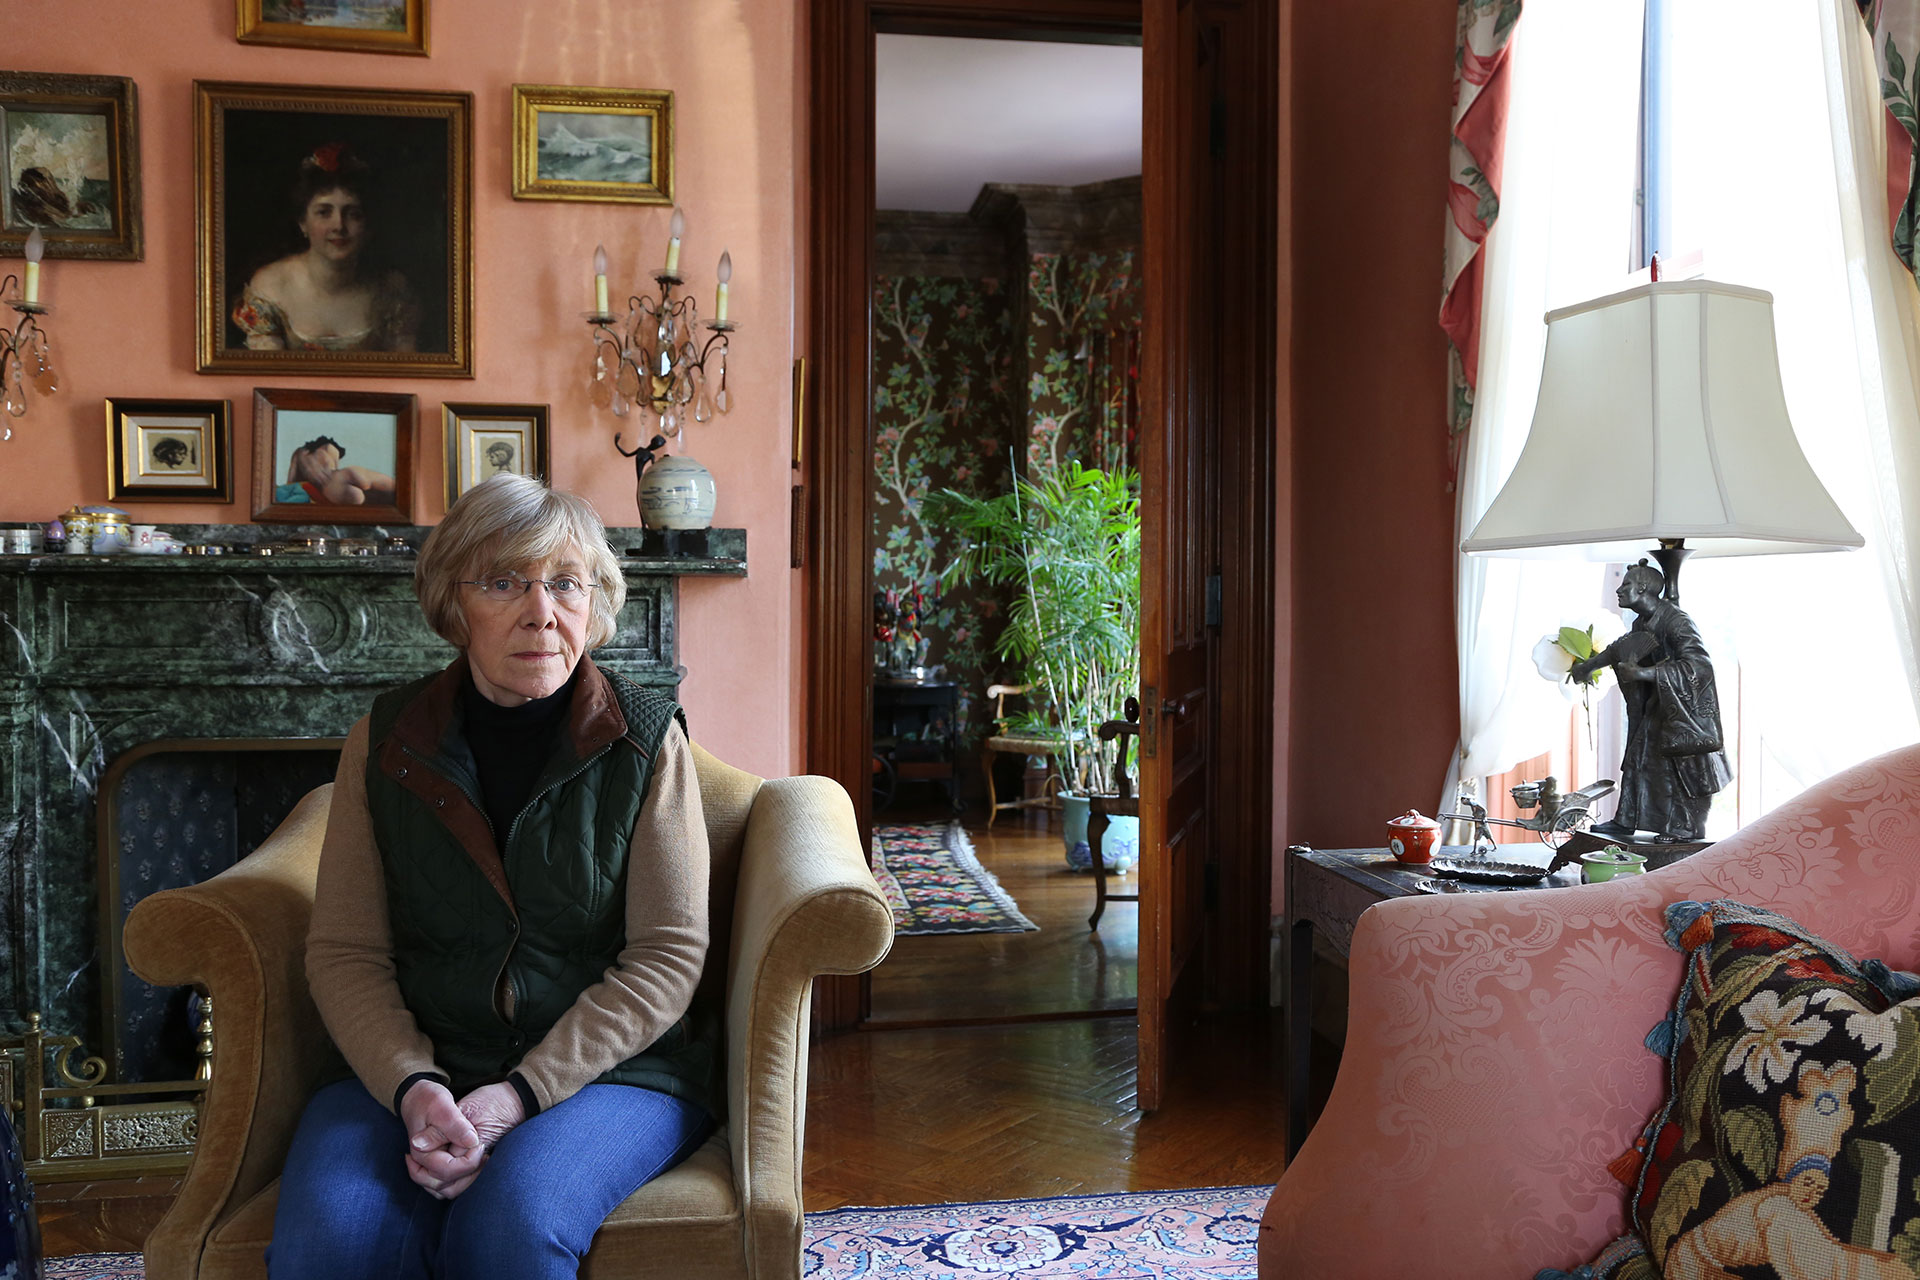 Community organizer Consuelo Isaacson poses for a portrait Feb. 1, 2019, in Cambridge, Massachusetts. Isaacson was born in Cuba and immigrated to the U.S. as a teenager in 1960, shortly after the Cuban Revolution. (Photo by: Photo by Joshua Qualls/GroundTruth)